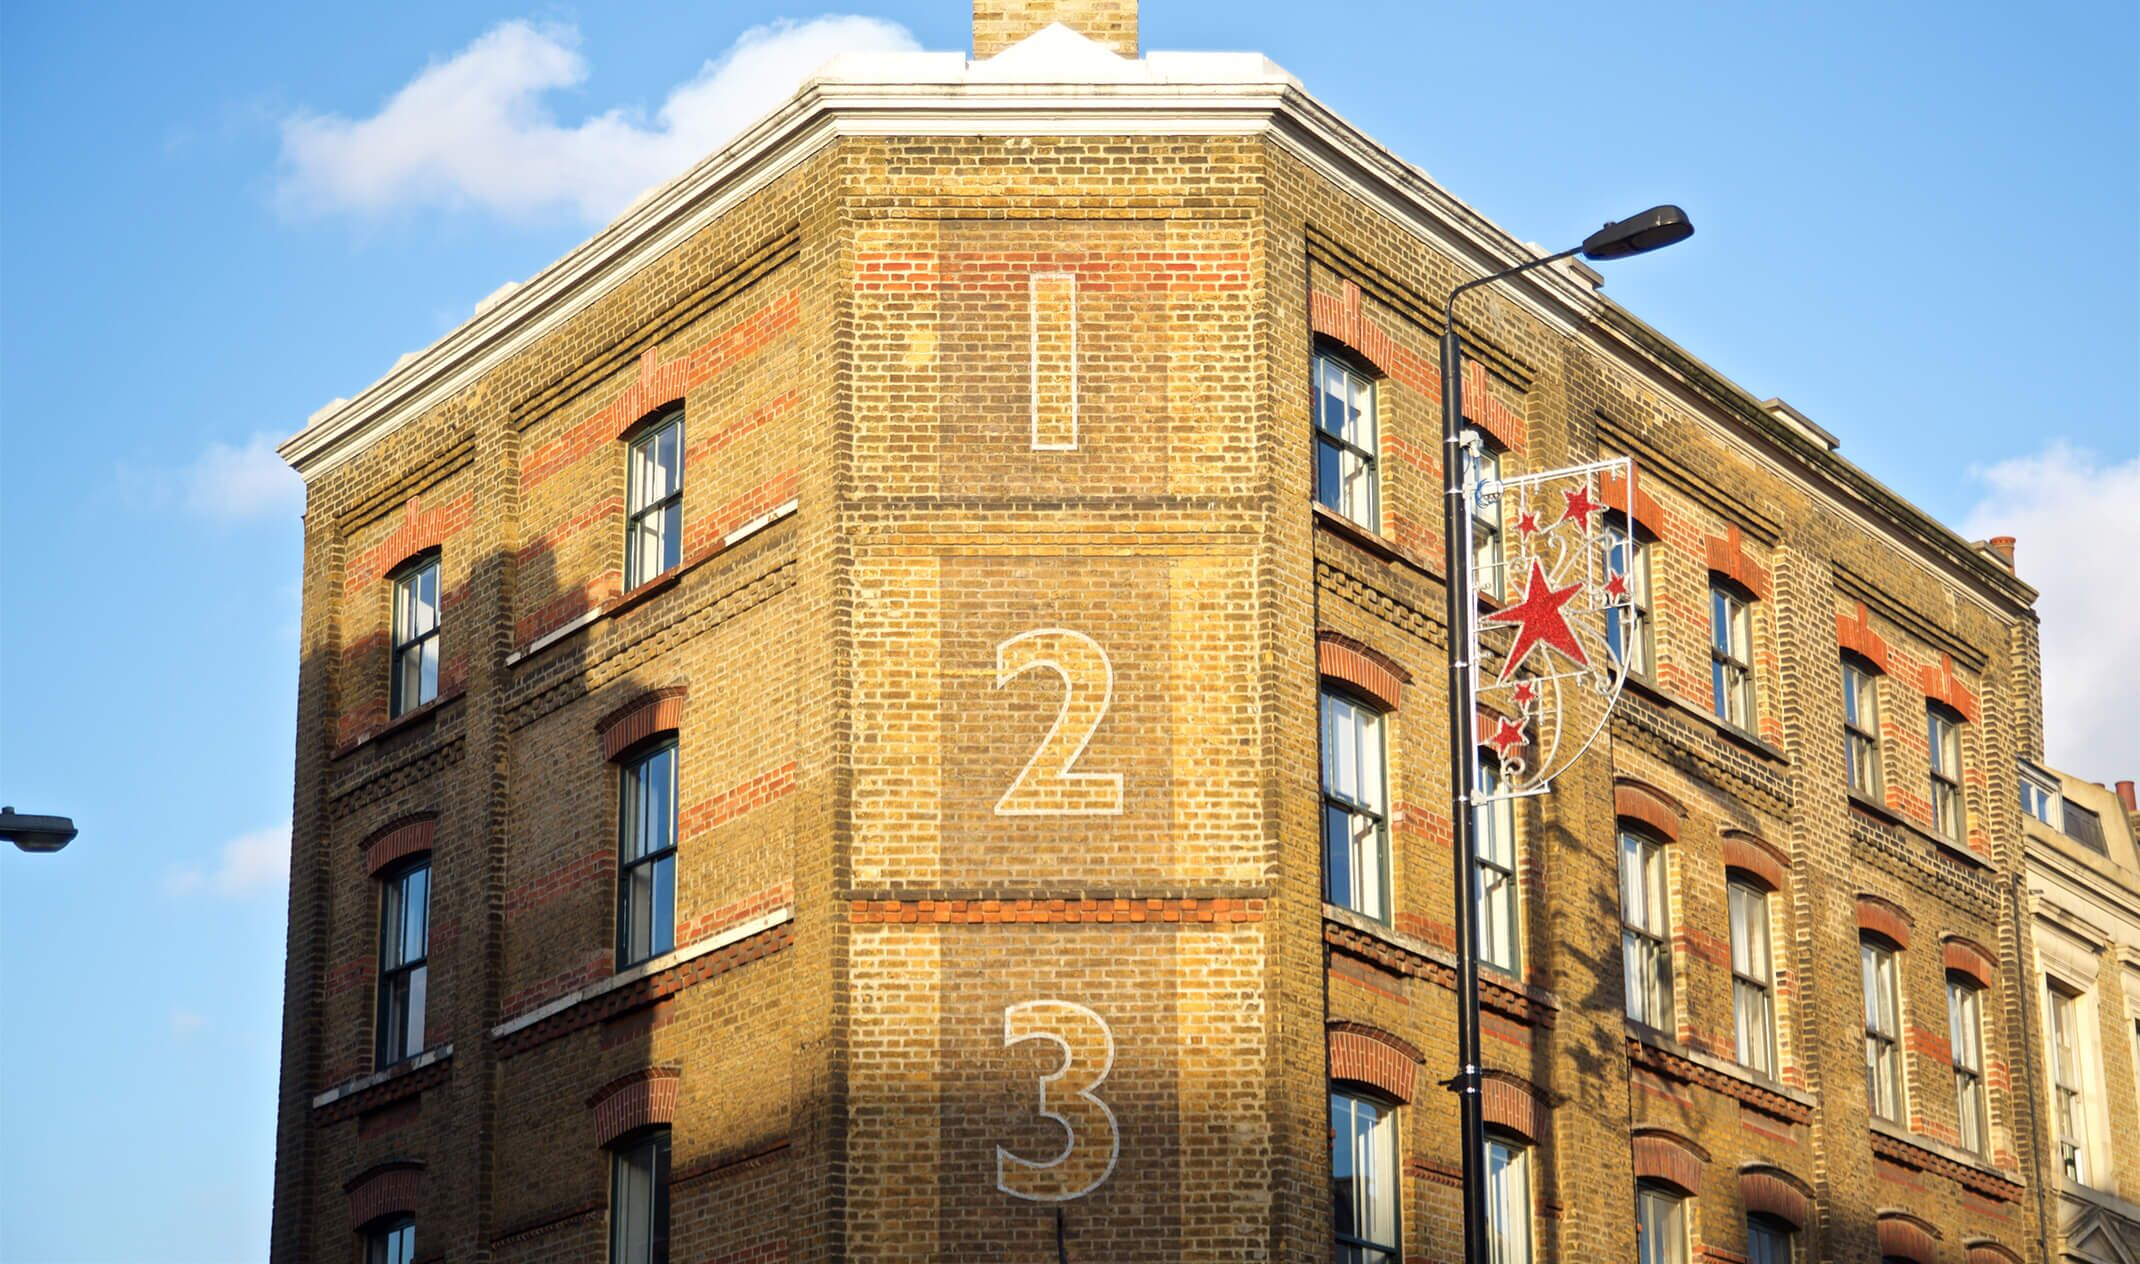 brick building with one two three